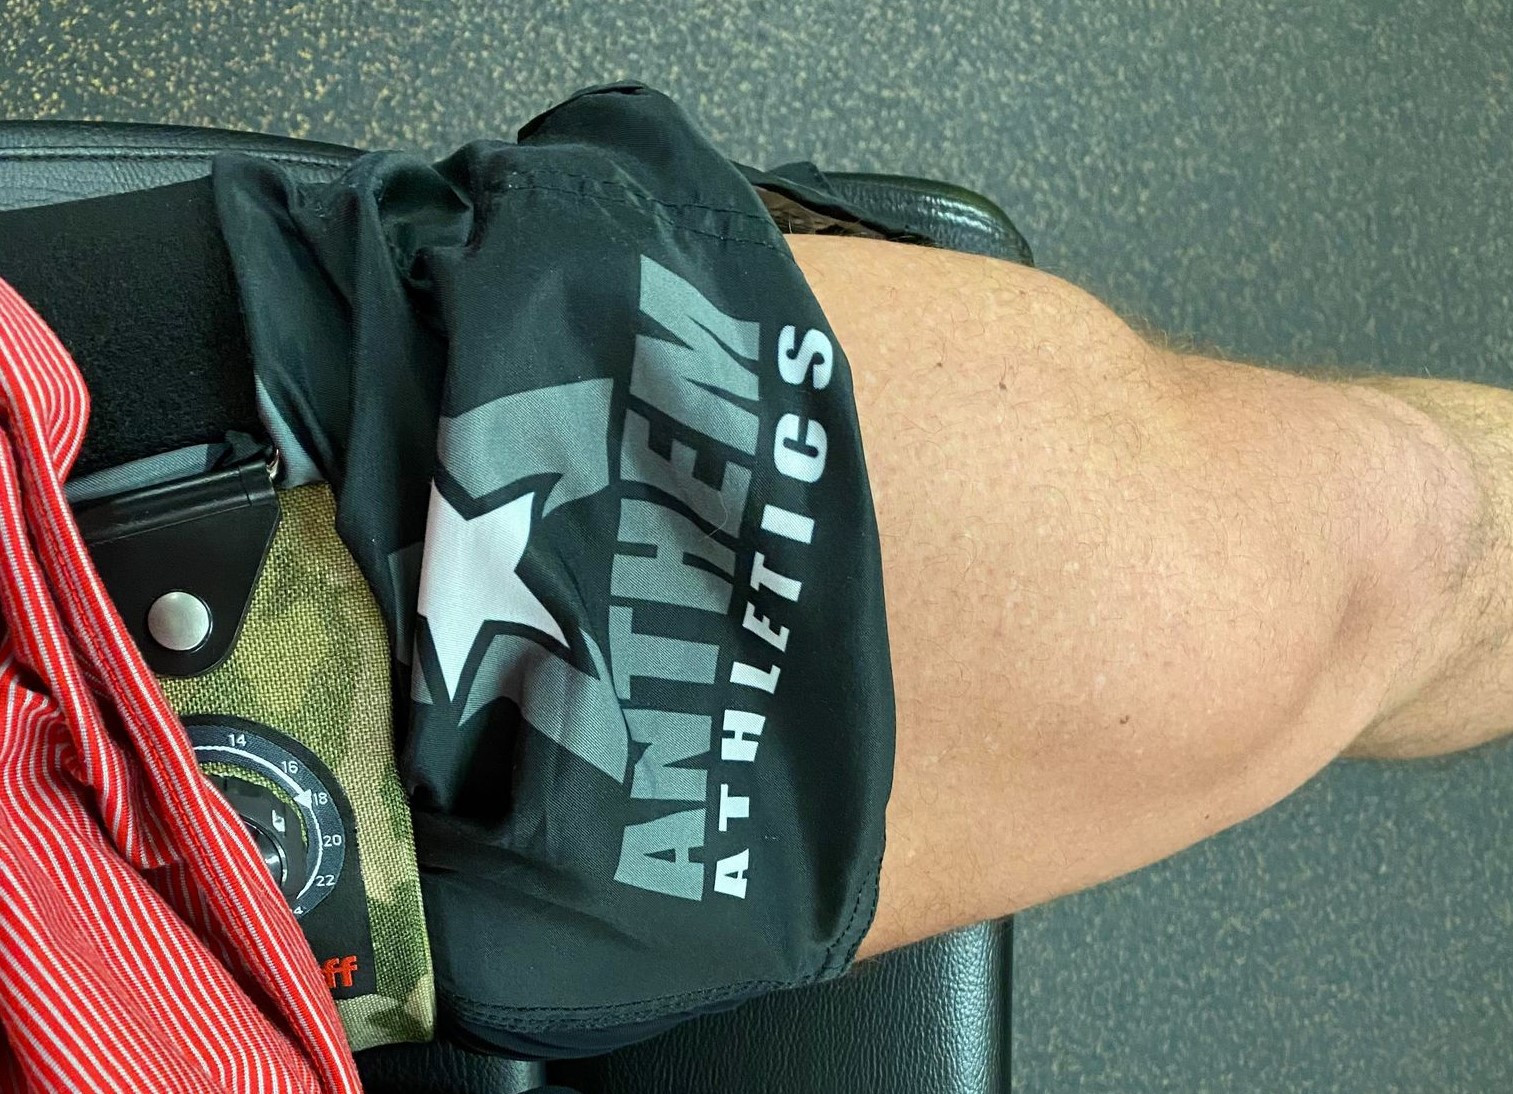 Avoiding the Pitfalls of Rehab – Part II A Physical Therapist/Patient Perspective/Story